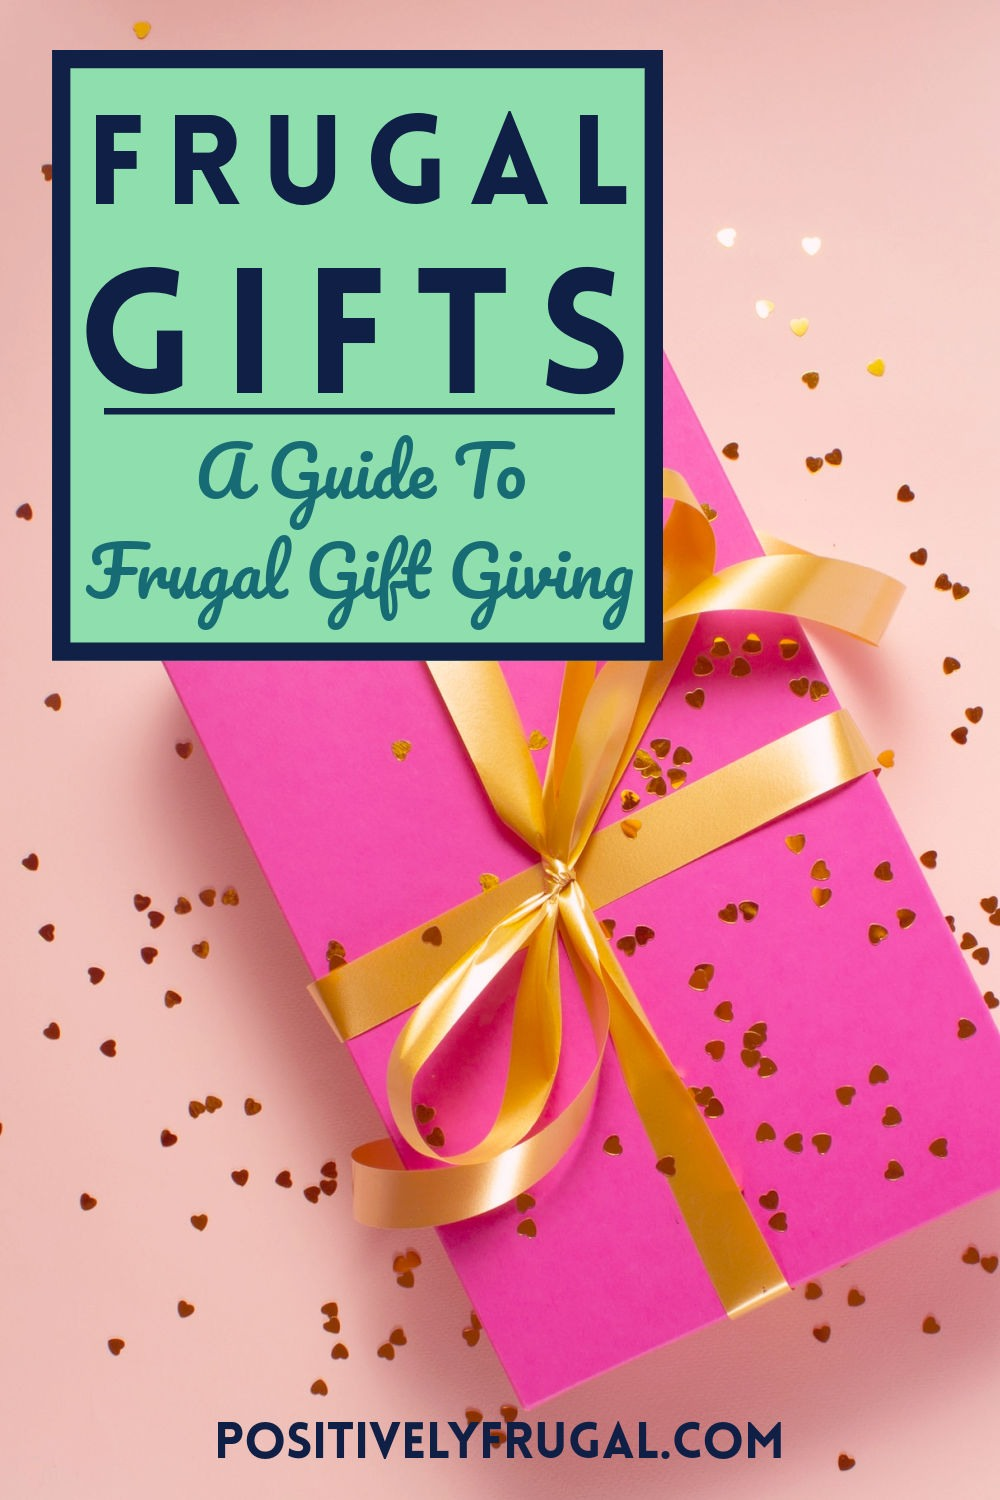 A Guide to Frugal Gift Giving by PositivelyFrugal.com